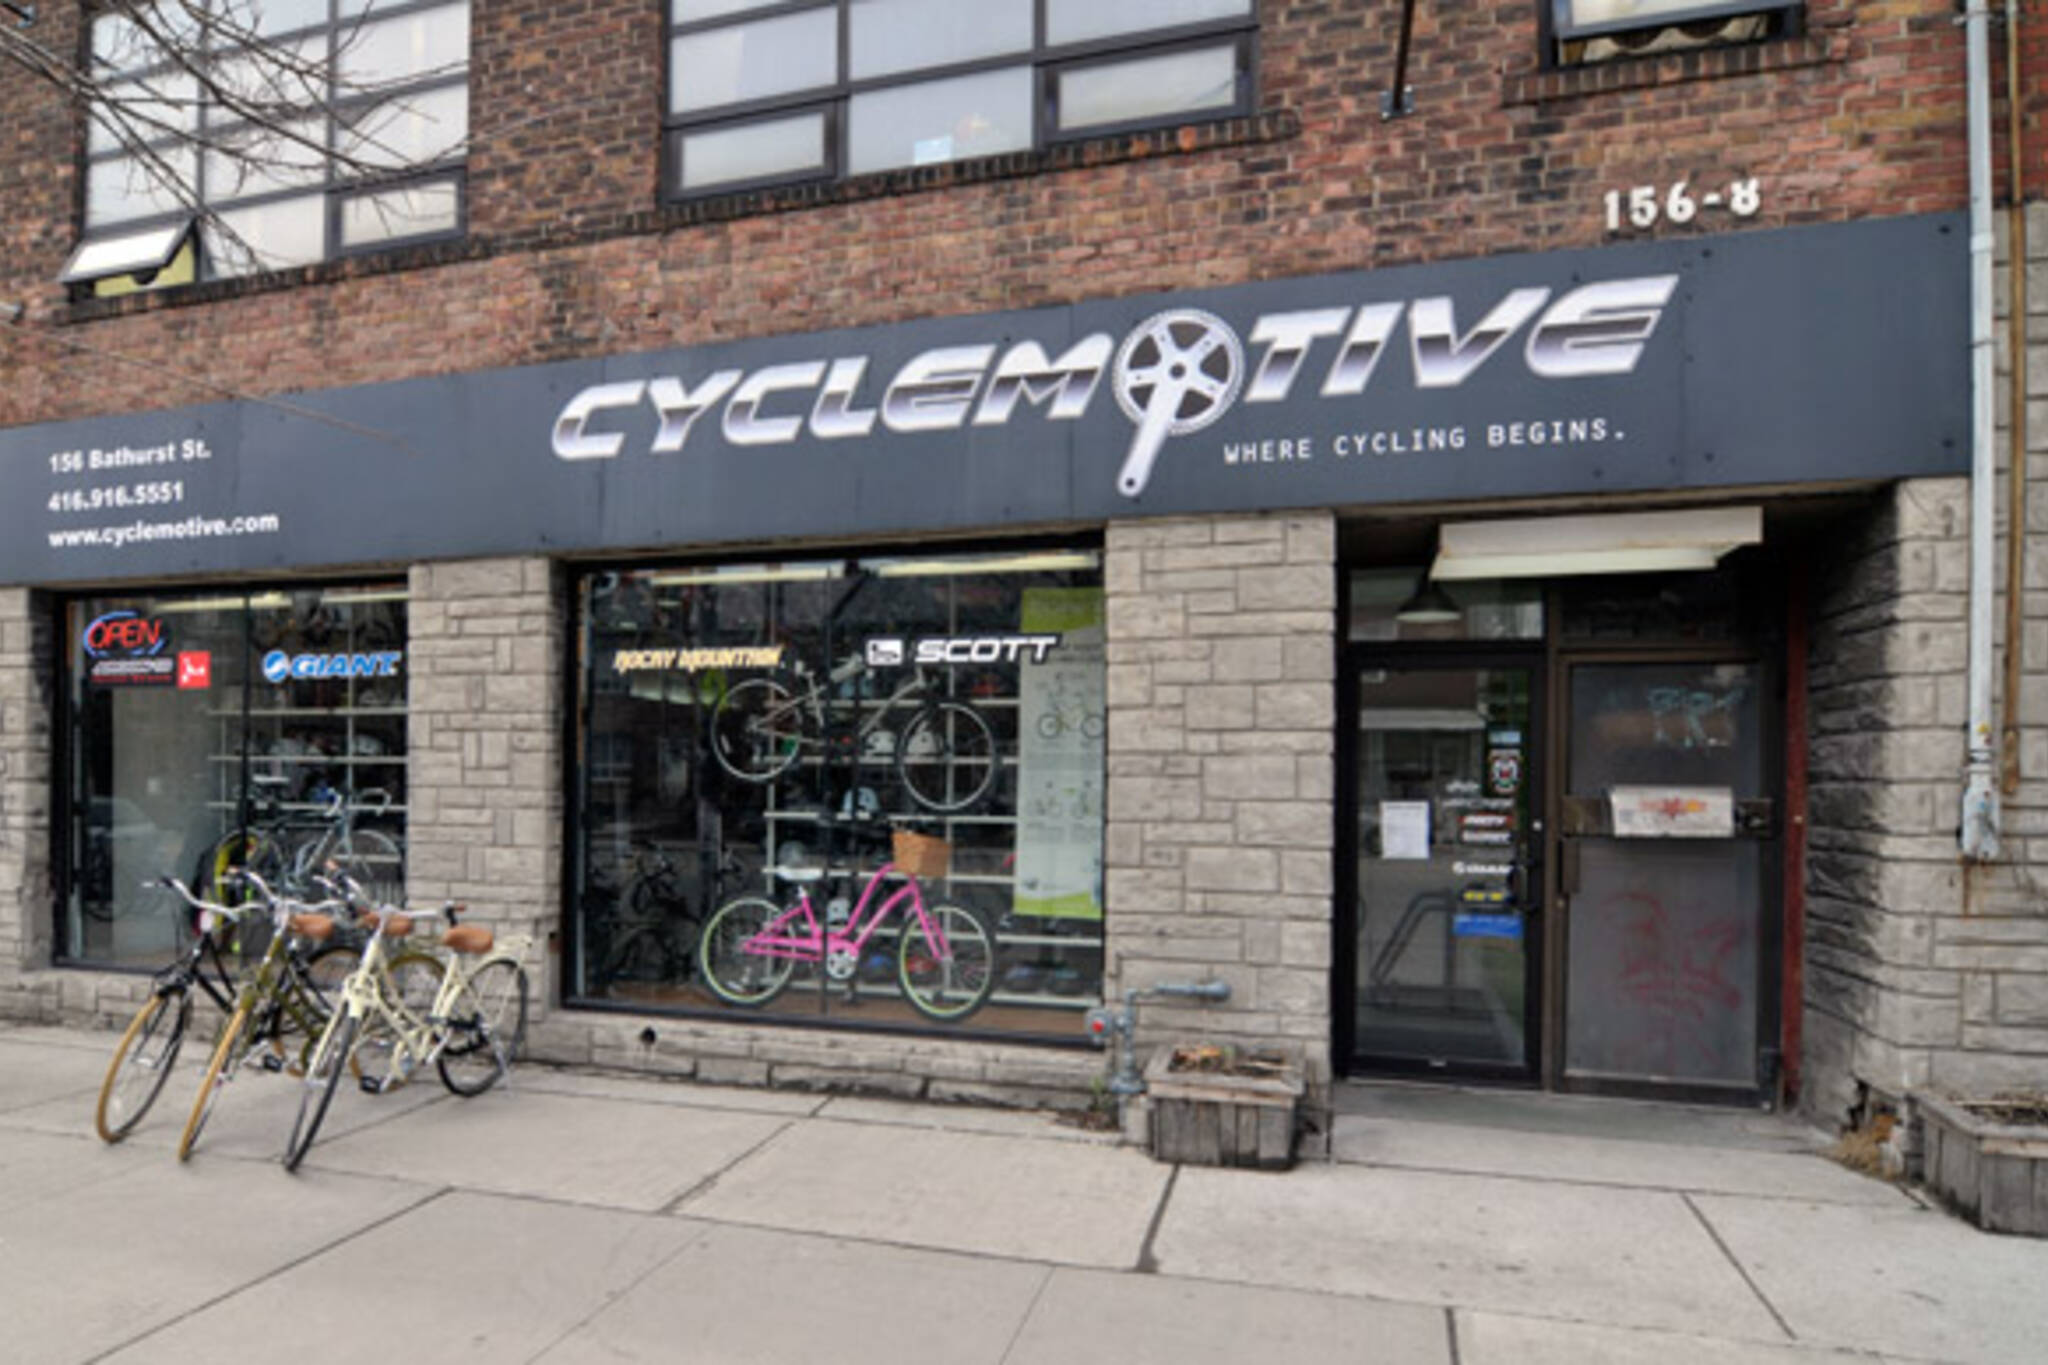 Cyclemotive Toronto